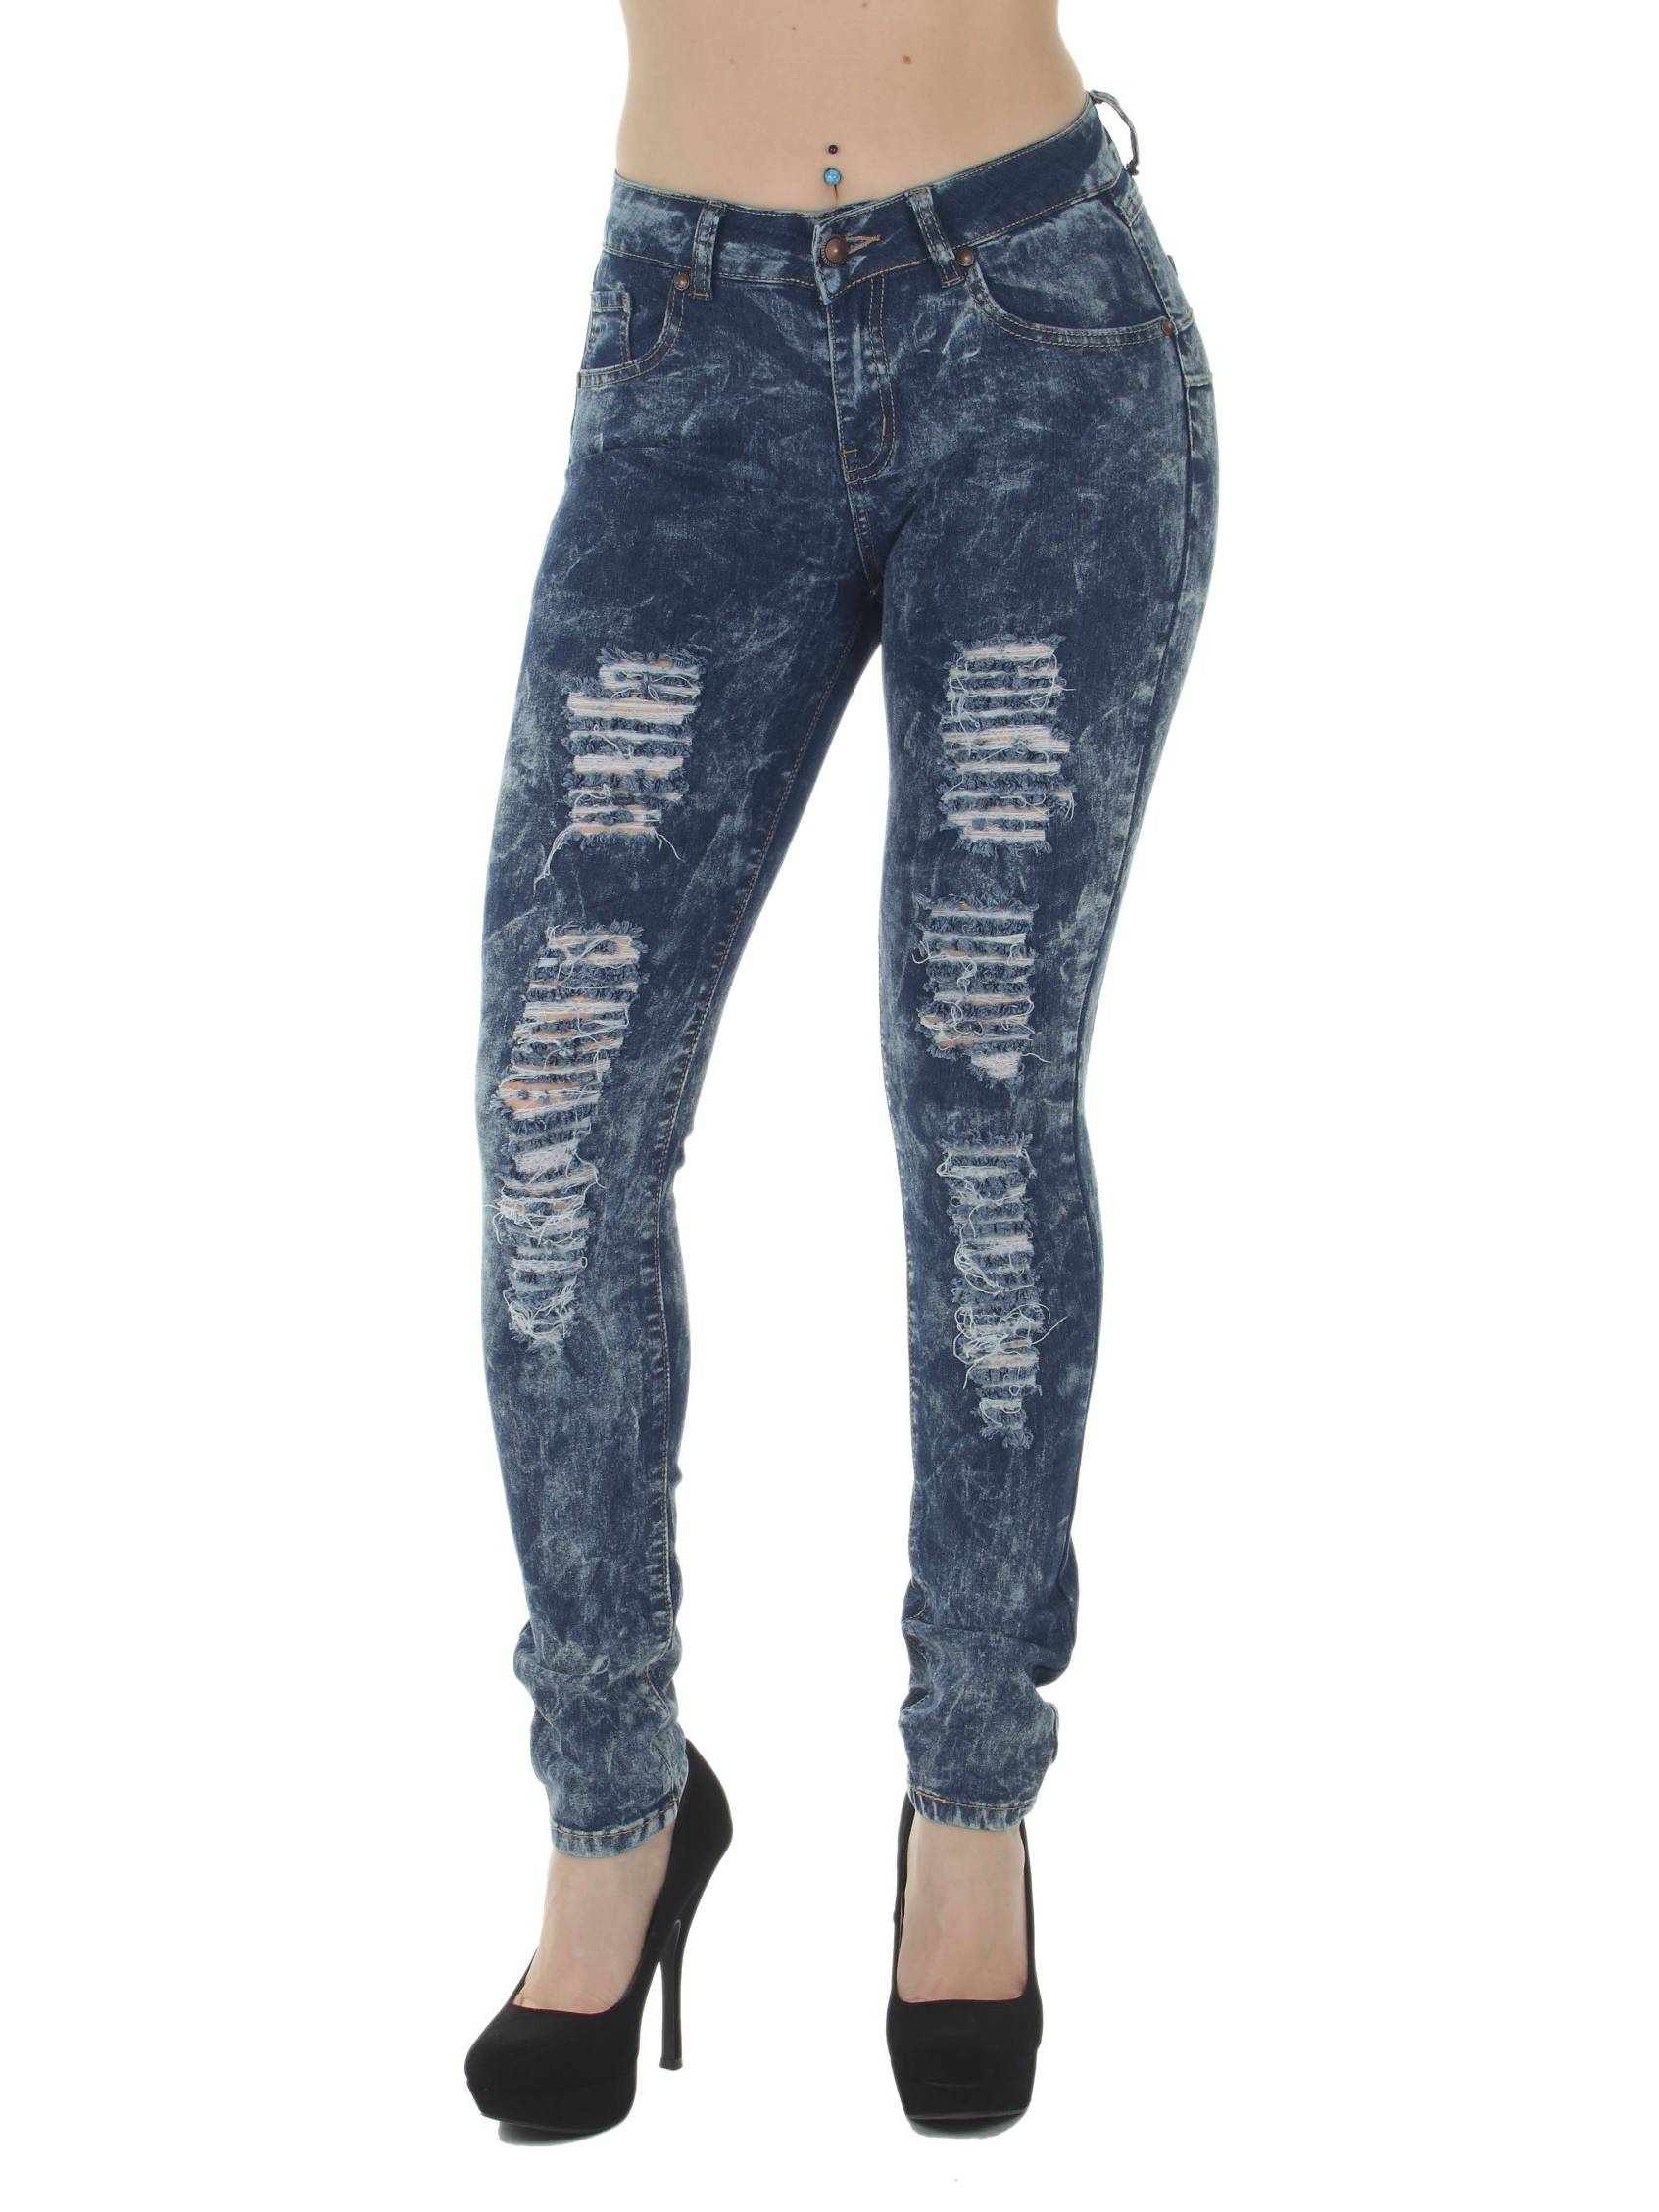 K882R  Butt Lift, Levanta Cola, Destroyed, Ripped, Mid Waist, Sexy Skinny Jeans